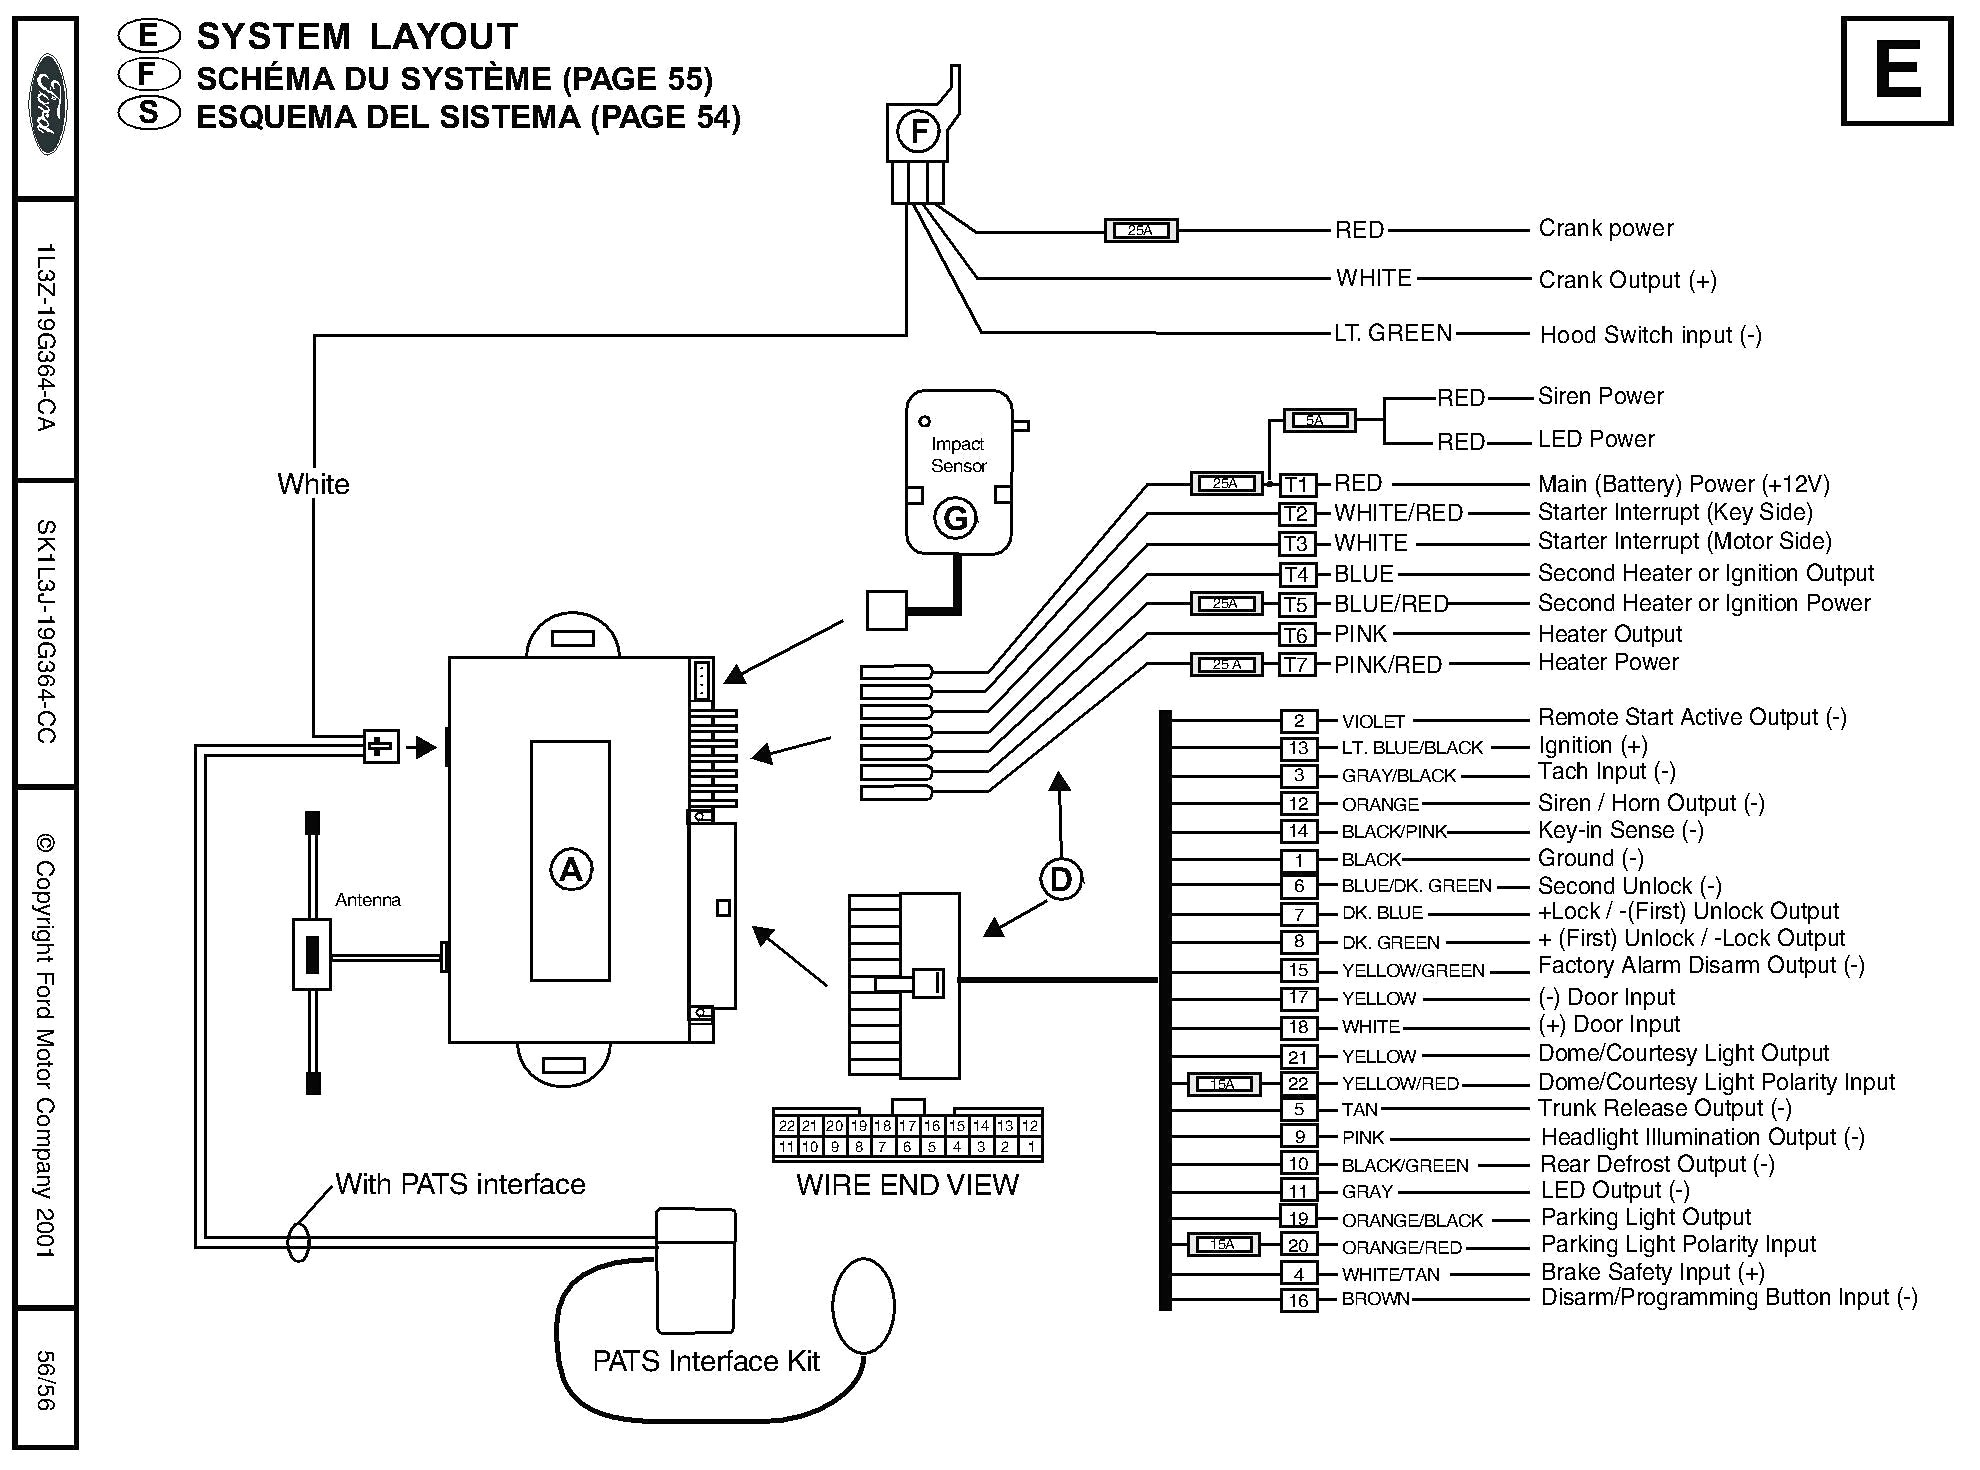 volvo b7rle wiring diagram electrical wiring diagram u2022 rh searchwiring today Volvo V70 Electrical Diagram Volvo 240 Fuse Diagram